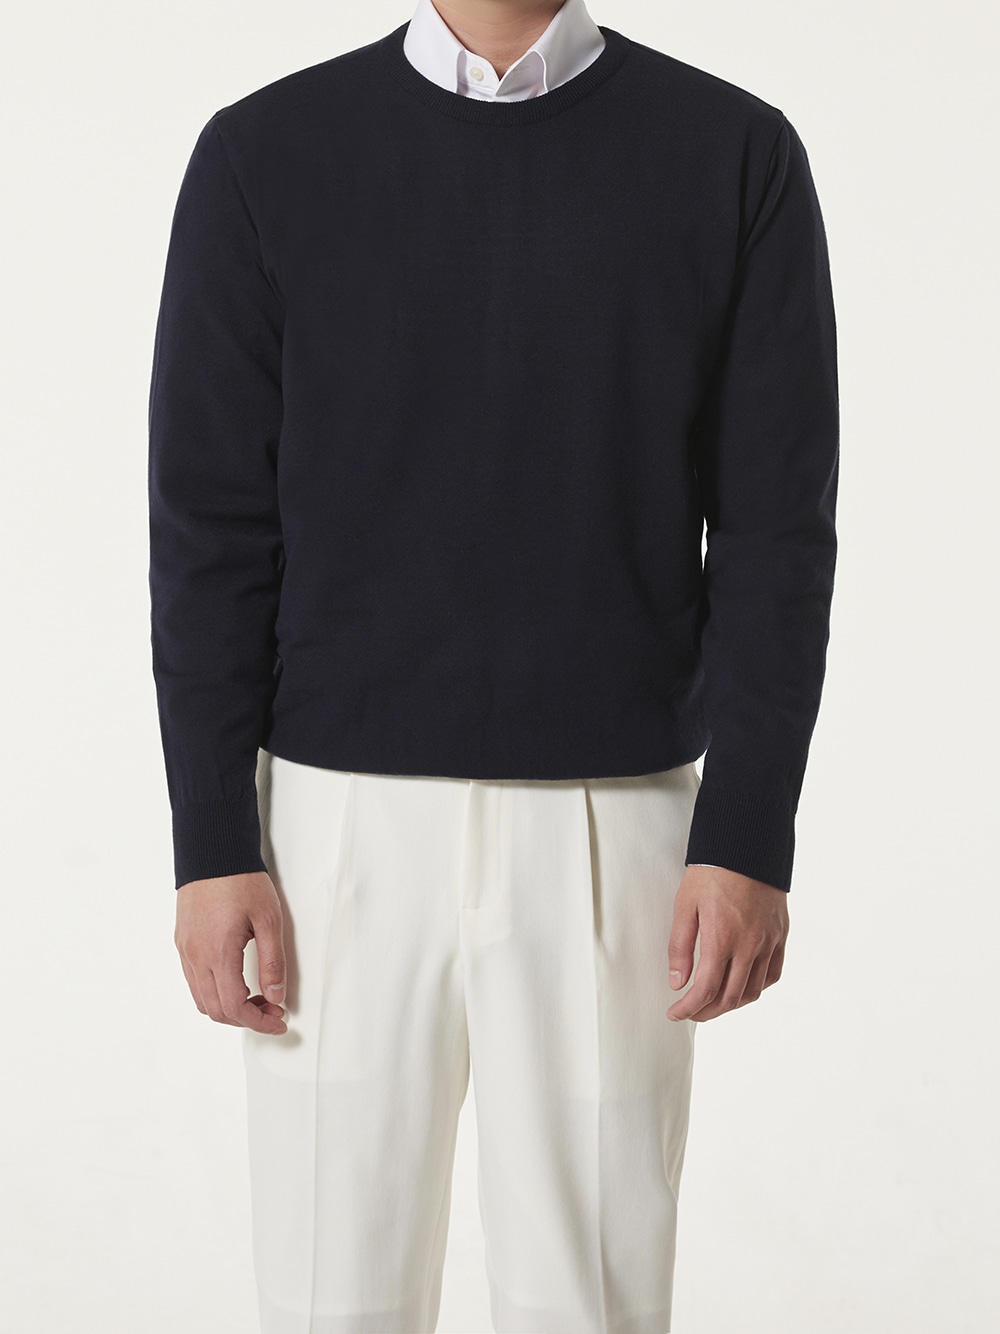 -[DEVERMAN] Soft touch solid crew neck knit (navy)